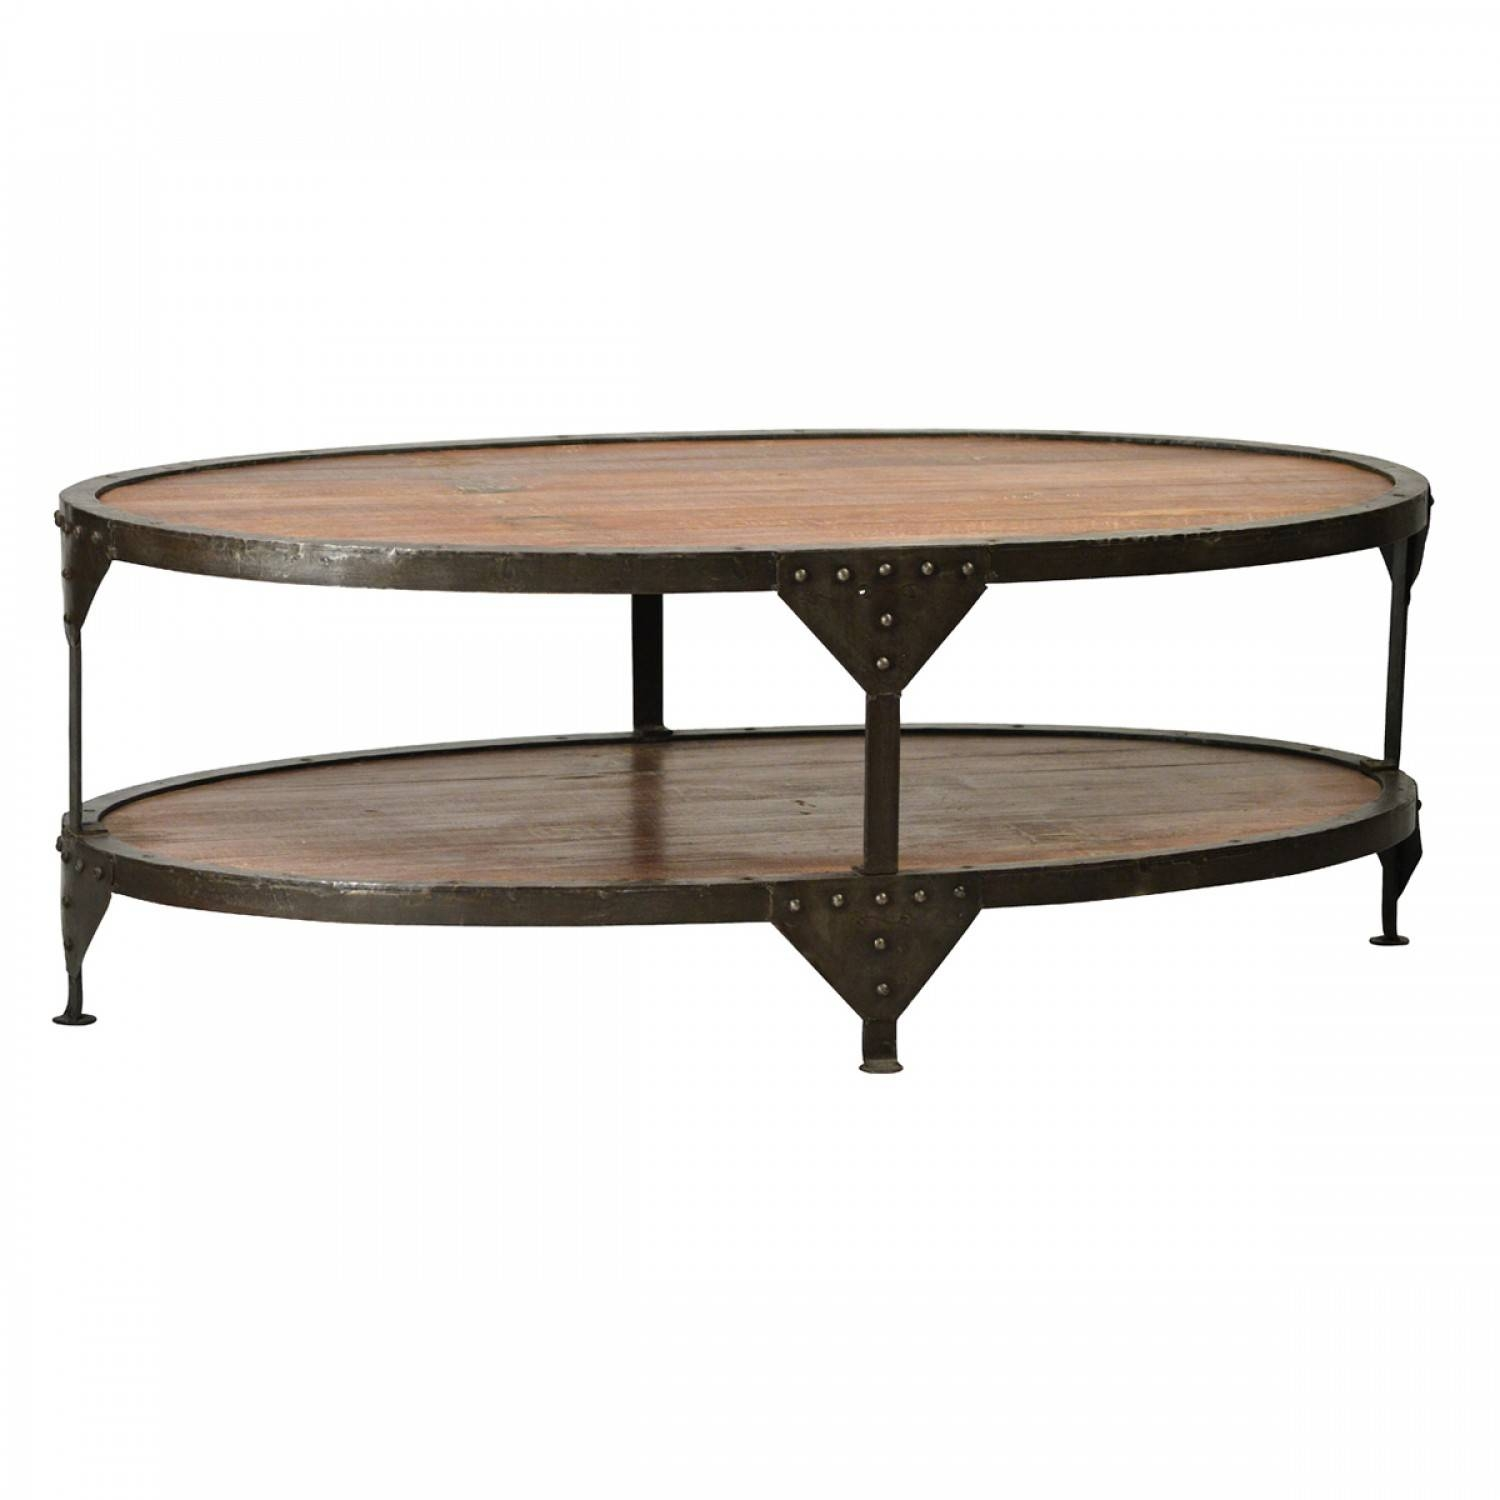 Small Oval Coffee Tables Uk | Coffee Tables Decoration regarding Black Oval Coffee Table (Image 26 of 30)